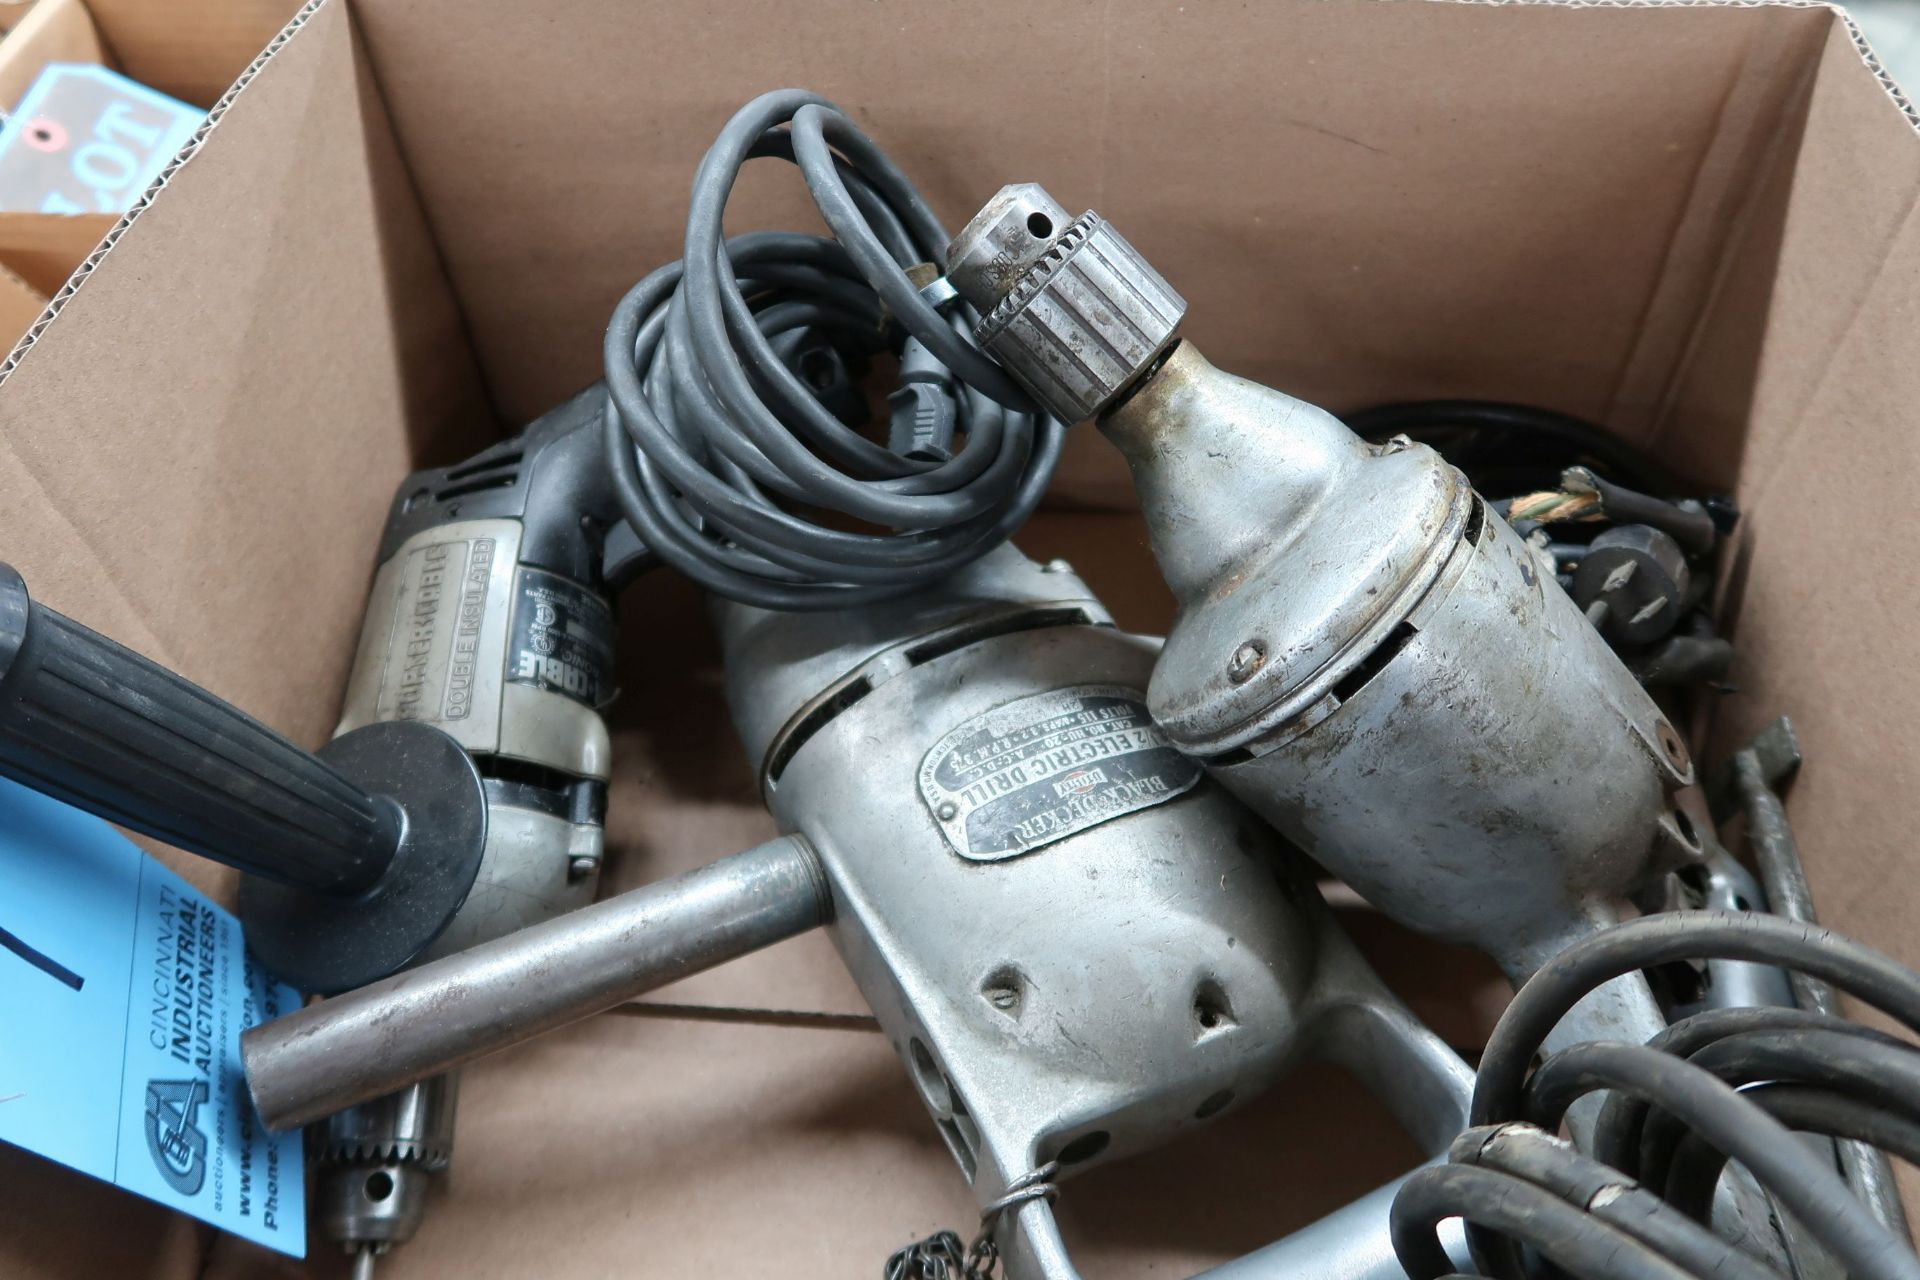 (LOT) ELECTRIC TOOLS INCLUDING (4) DRILLS & (1) CIRCULAR SAW - Image 3 of 3